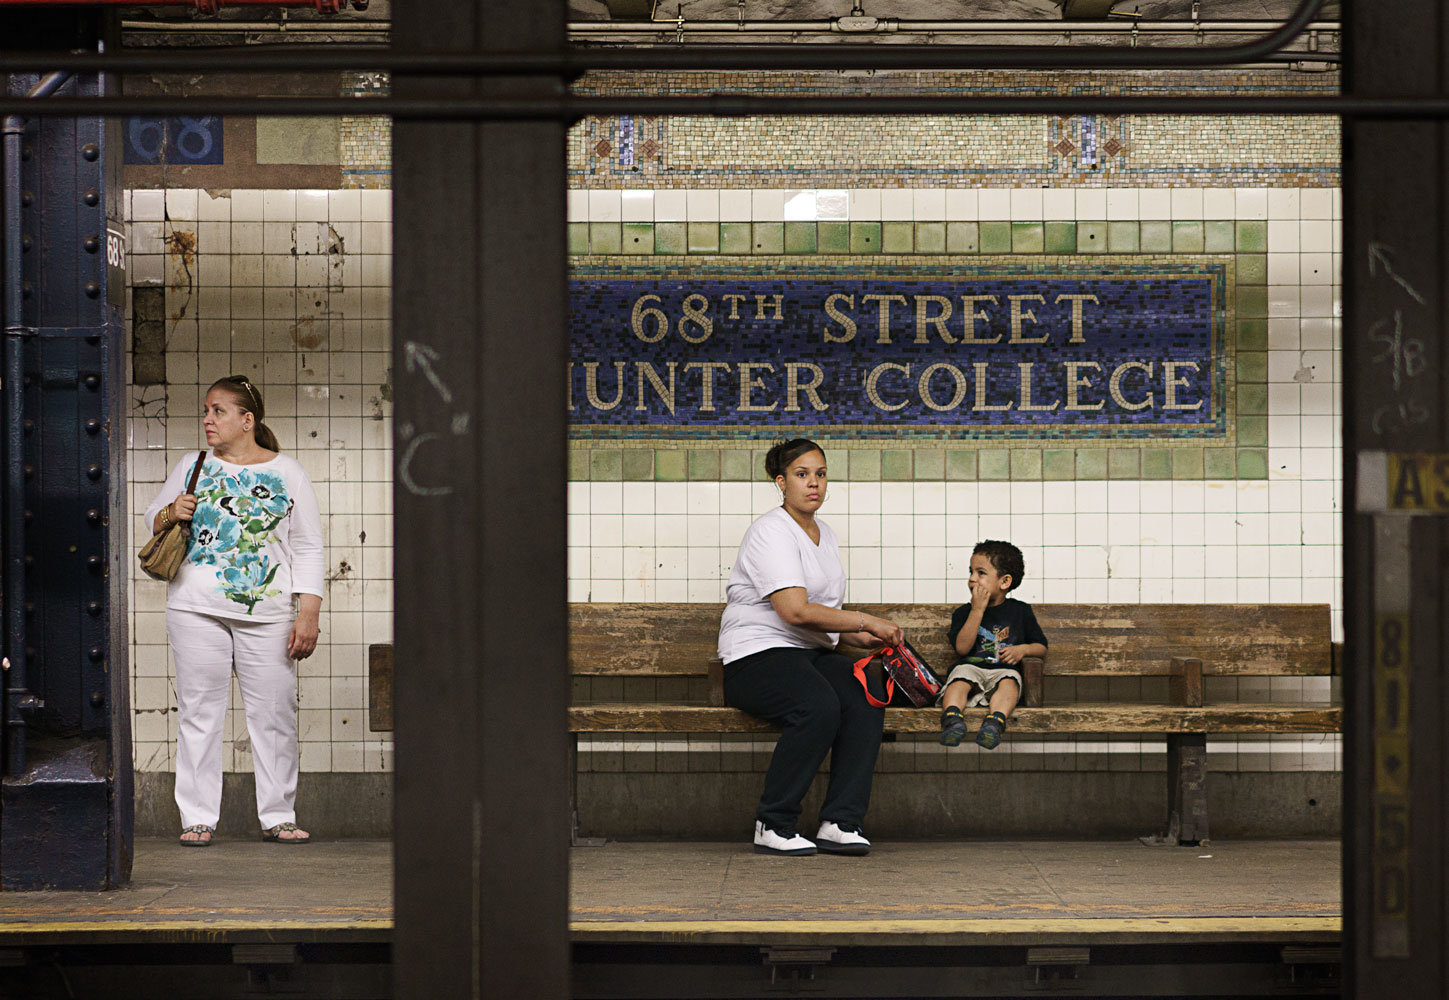 Subway4MotherChild_DSC4636-as-Smart-Object-1.jpg